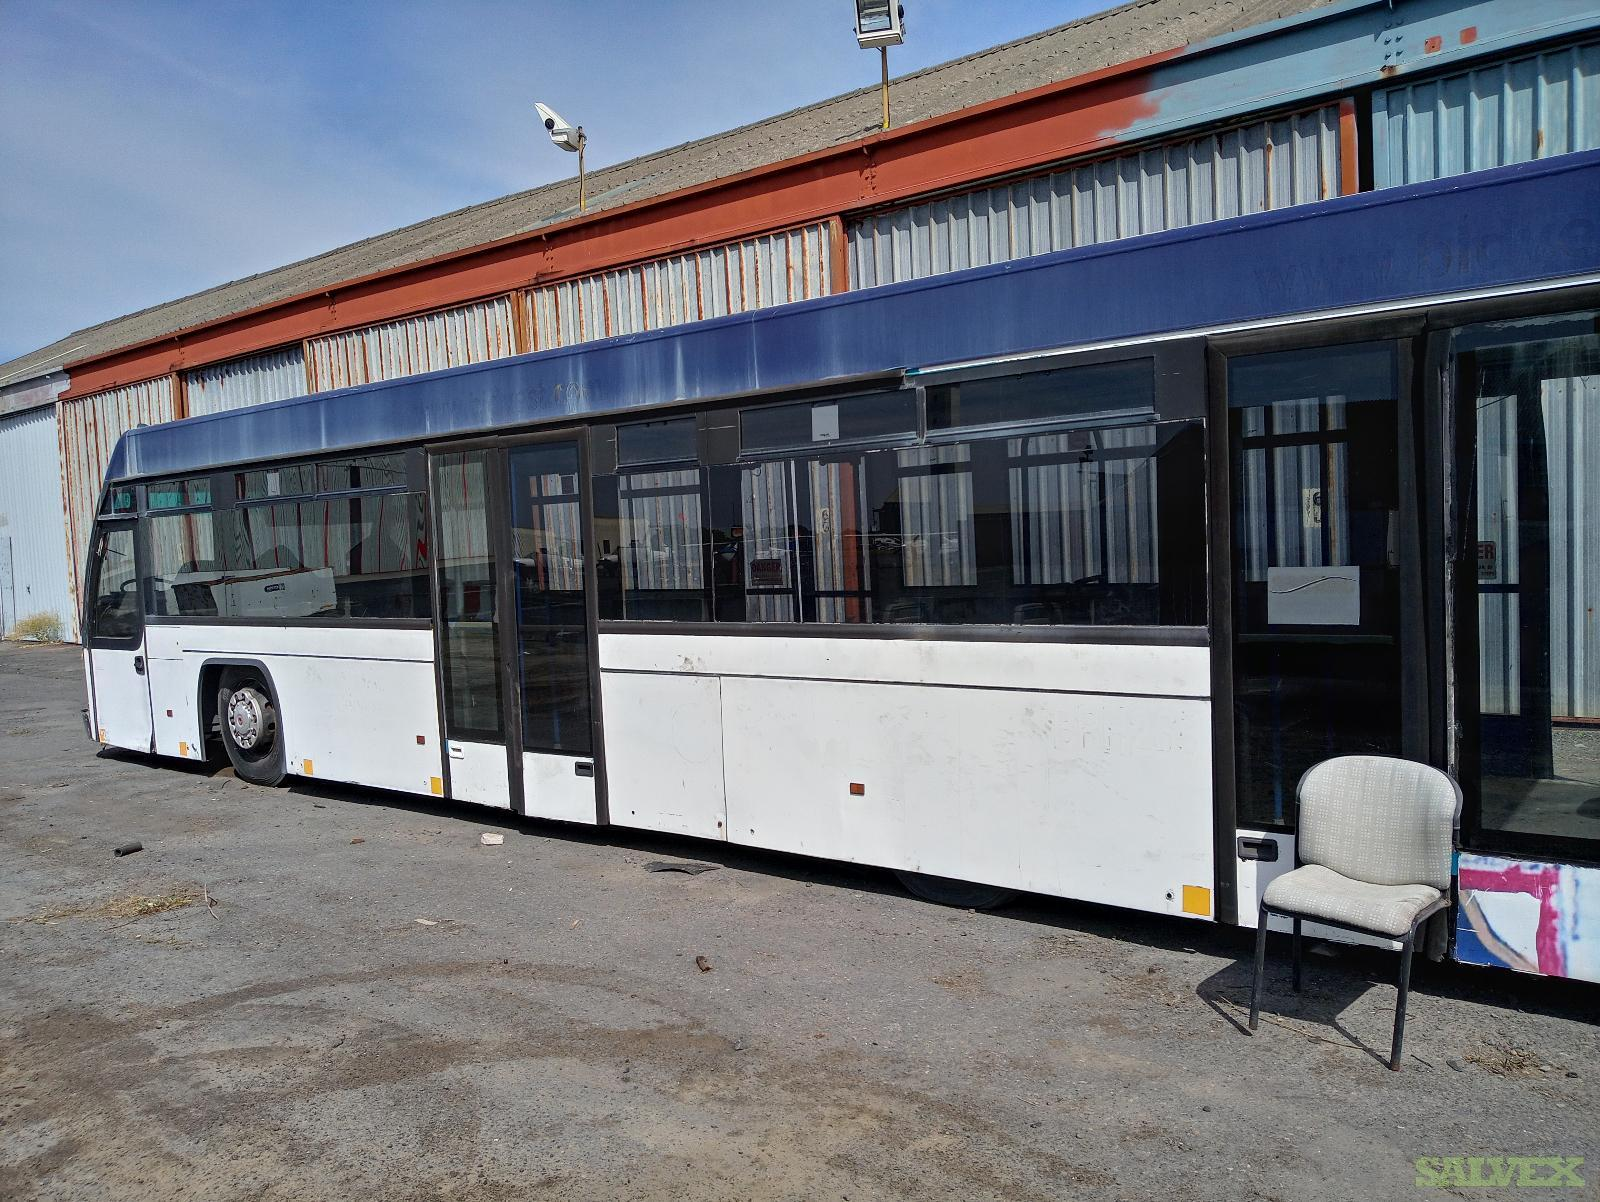 Airport Buses / 2700 Model (4 Units) - Parted and Stripped / Sold As Scrap